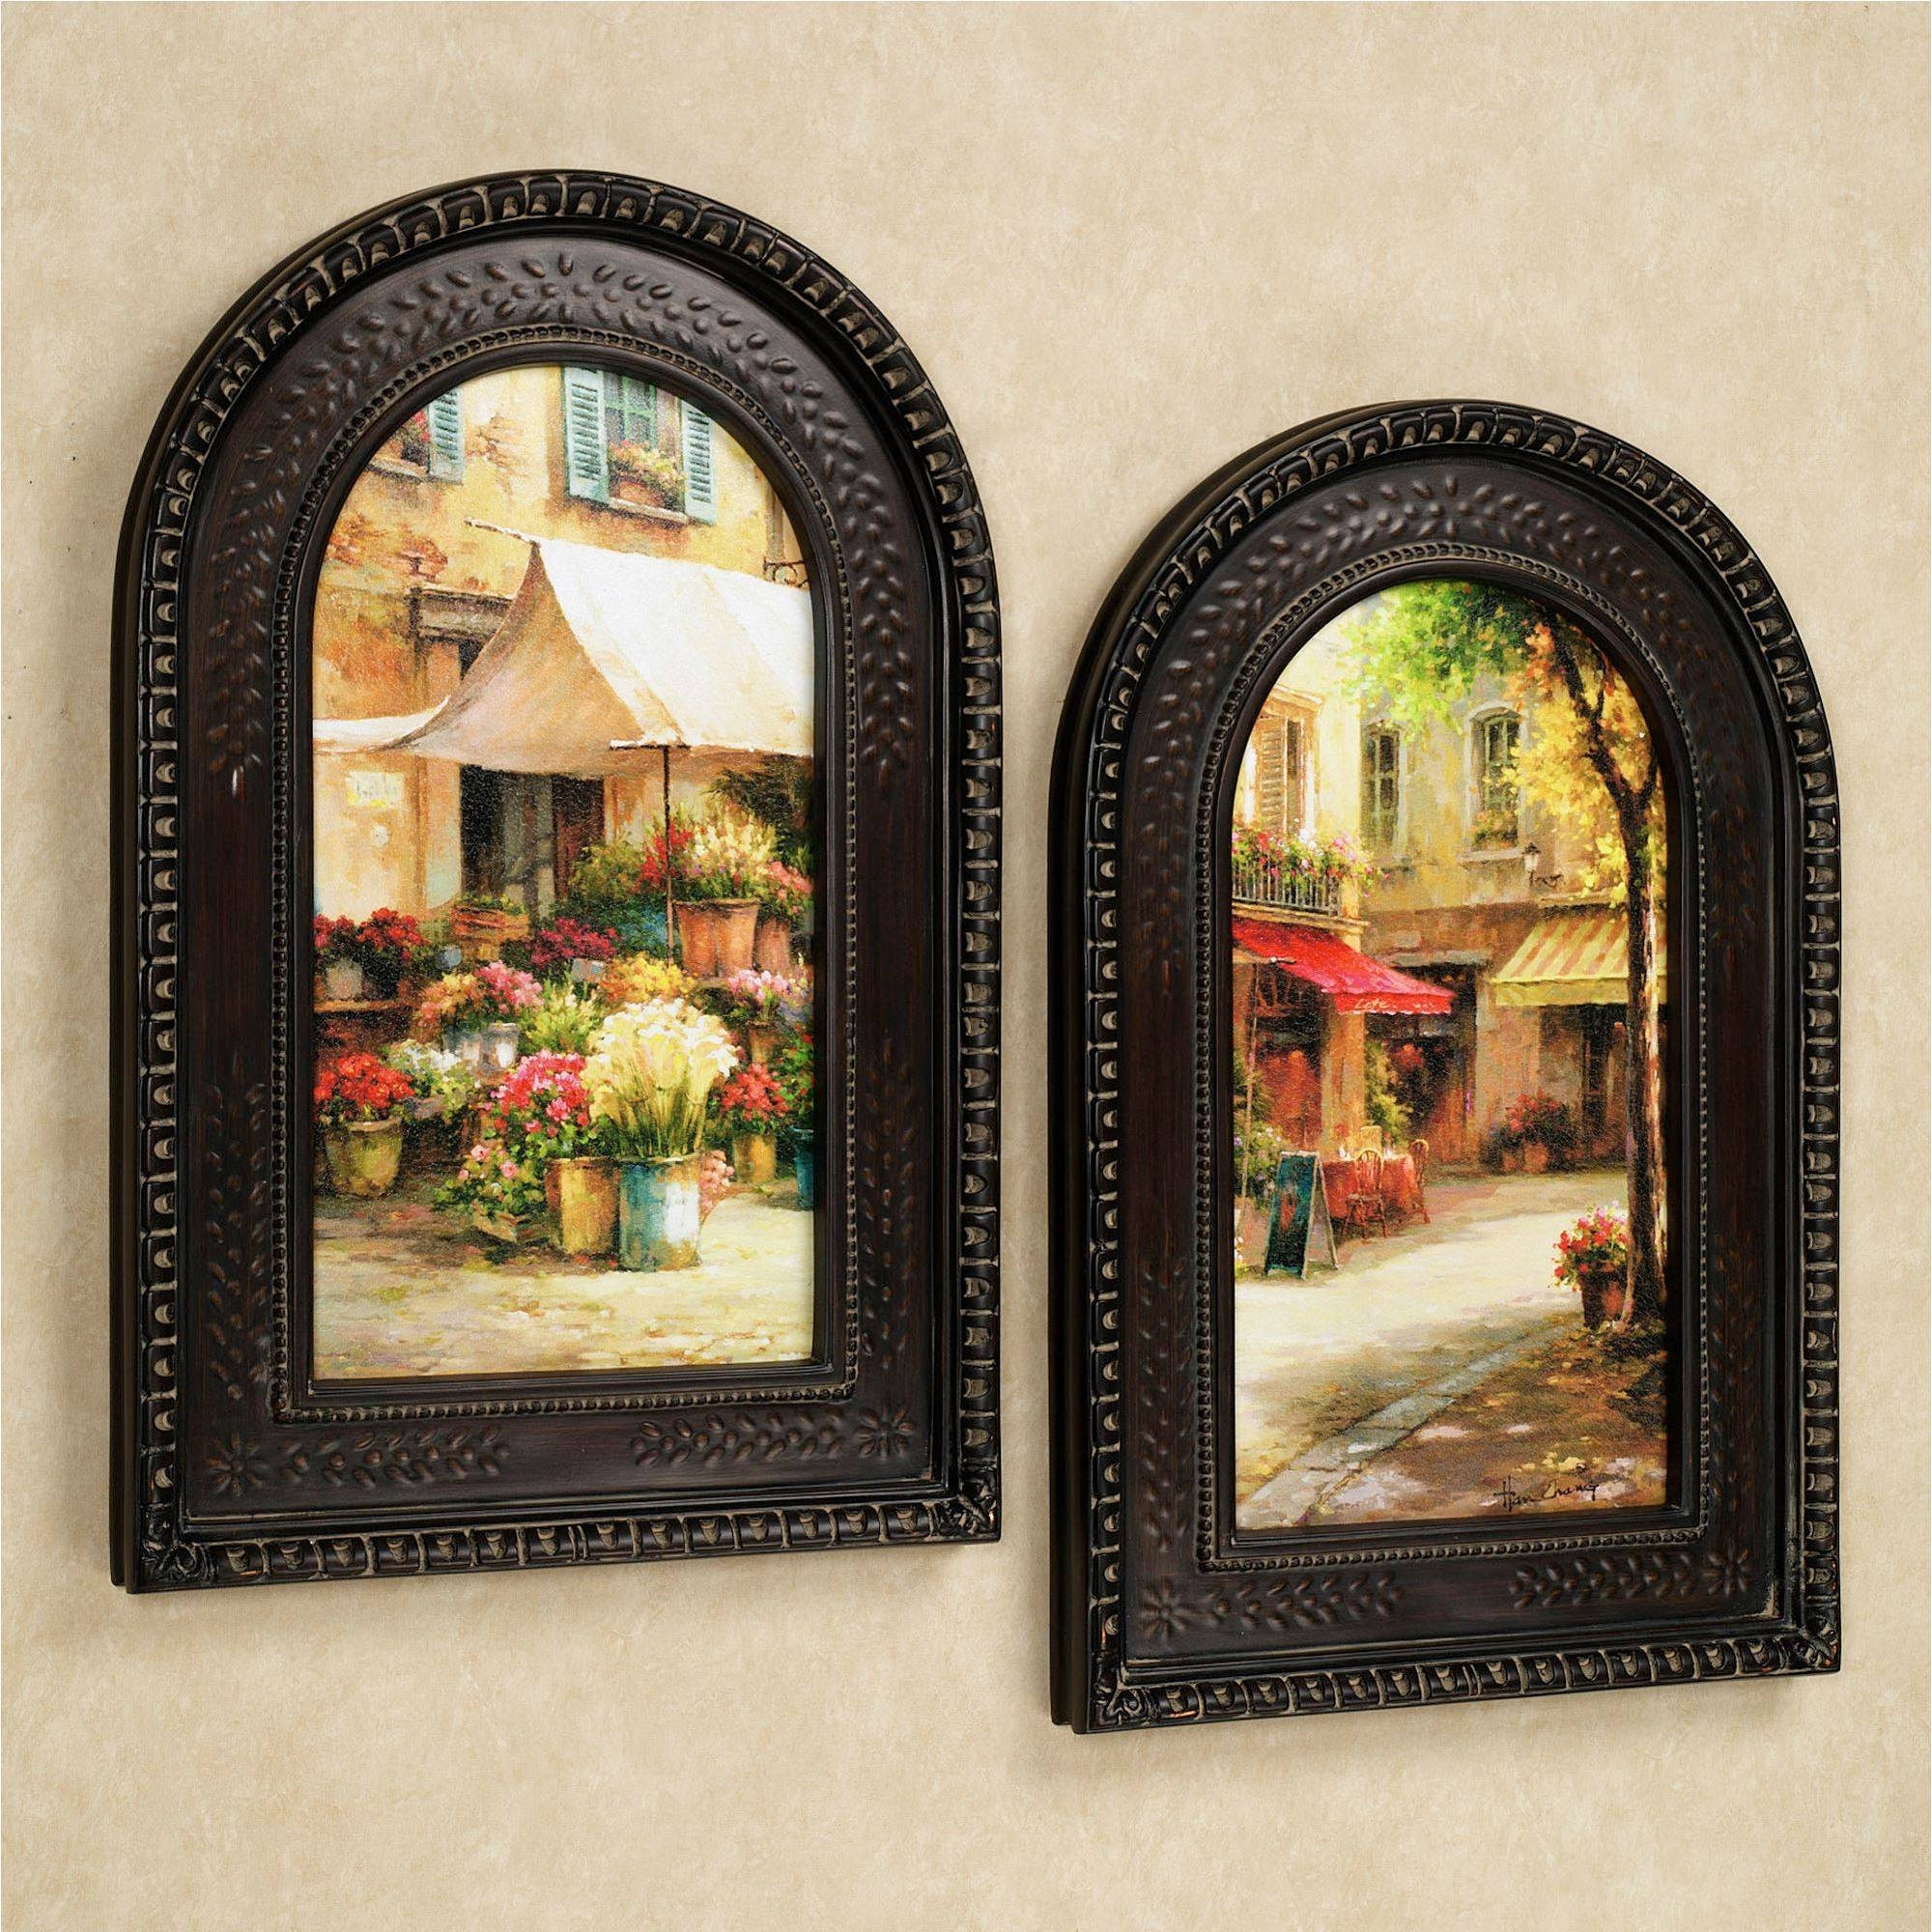 Remarkable Decoration Framed Wall Art Sets Exclusive Ideas Wall In Most Current Cheap Wall Art Sets (Gallery 14 of 20)